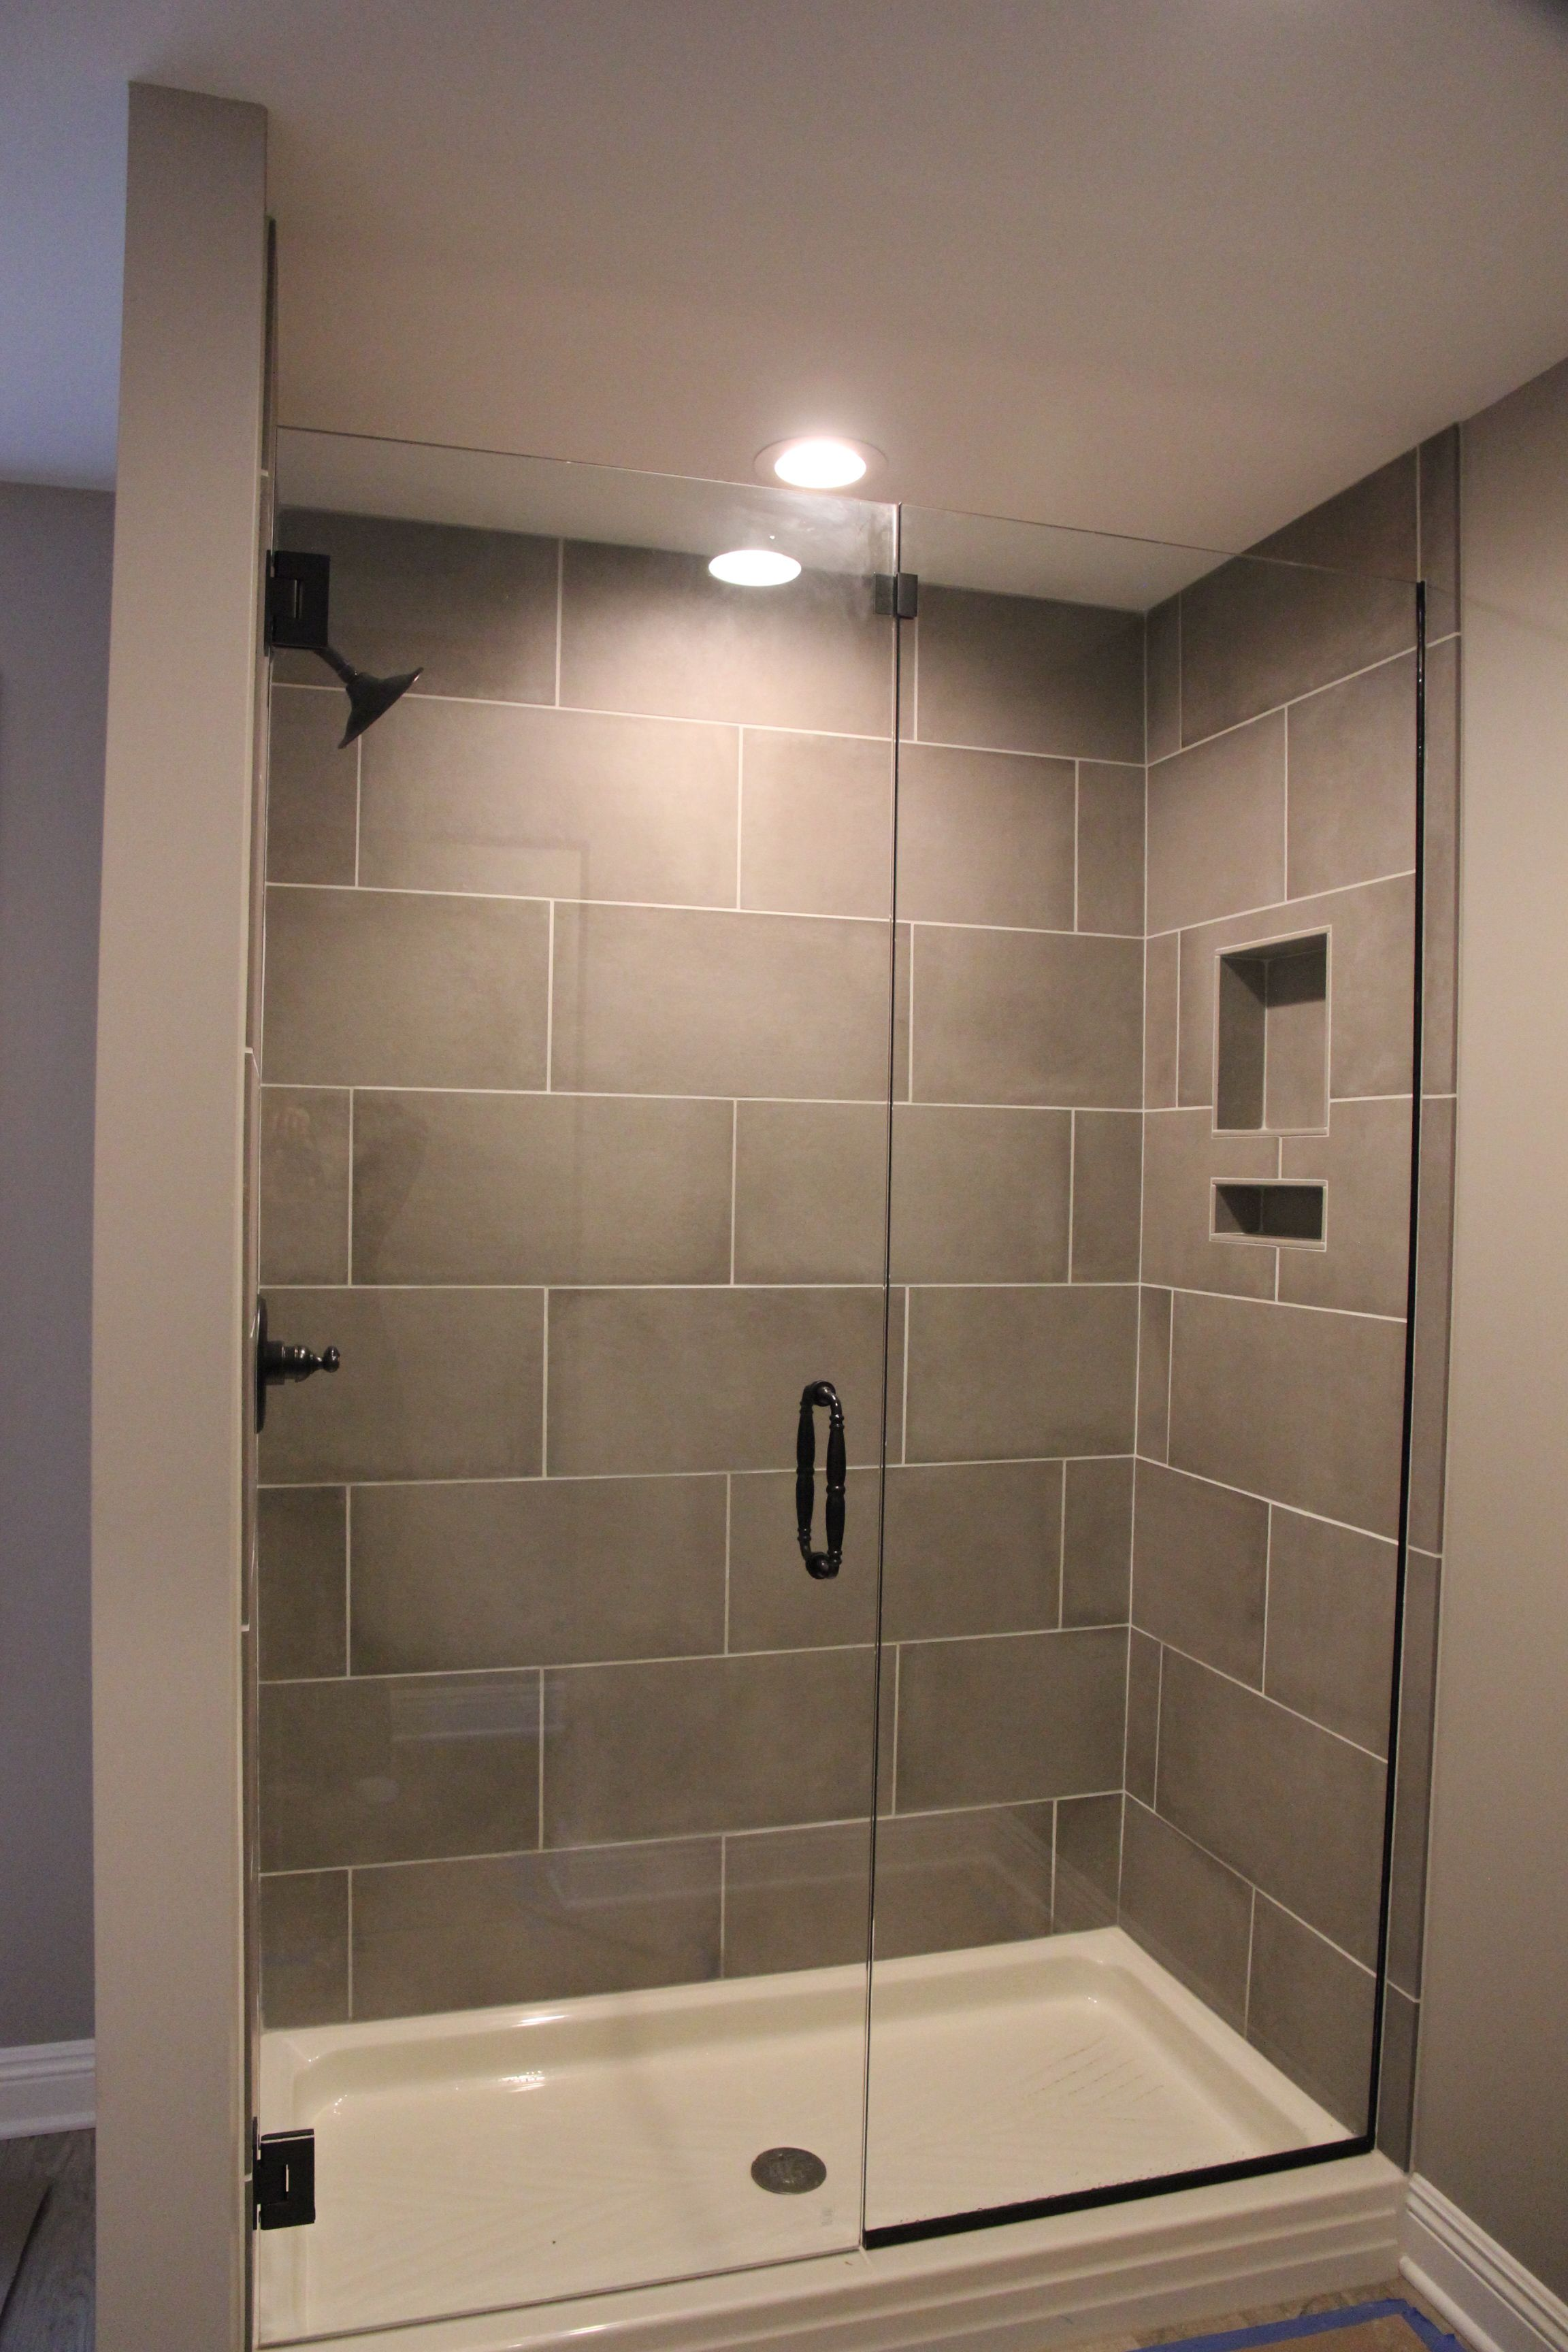 boys showers, big tiles, fiberglass base, no shower door. Easier